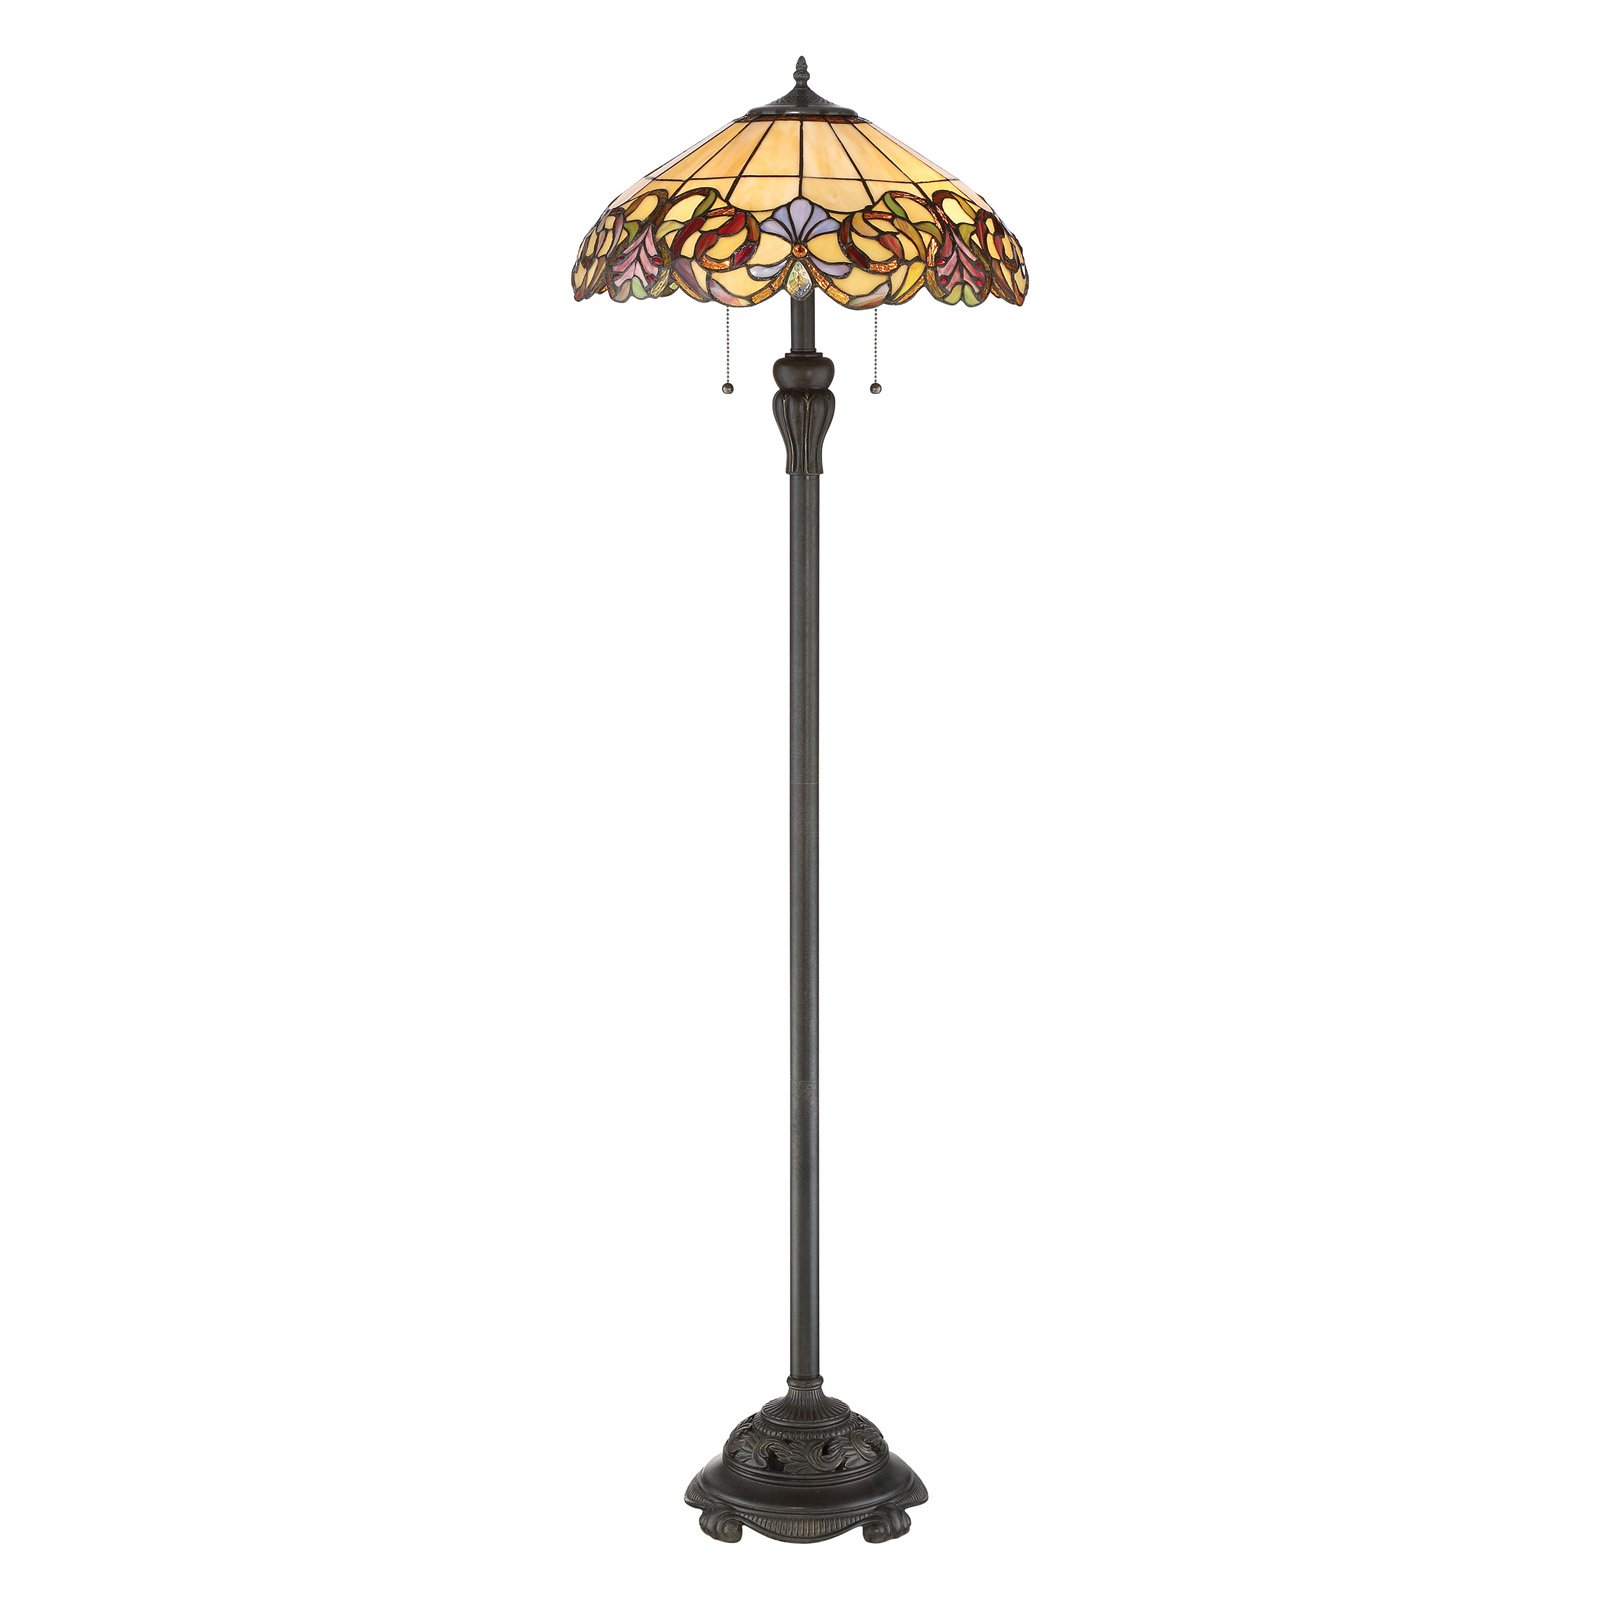 Quoizel Blossom Floor Lamp by Quoizel